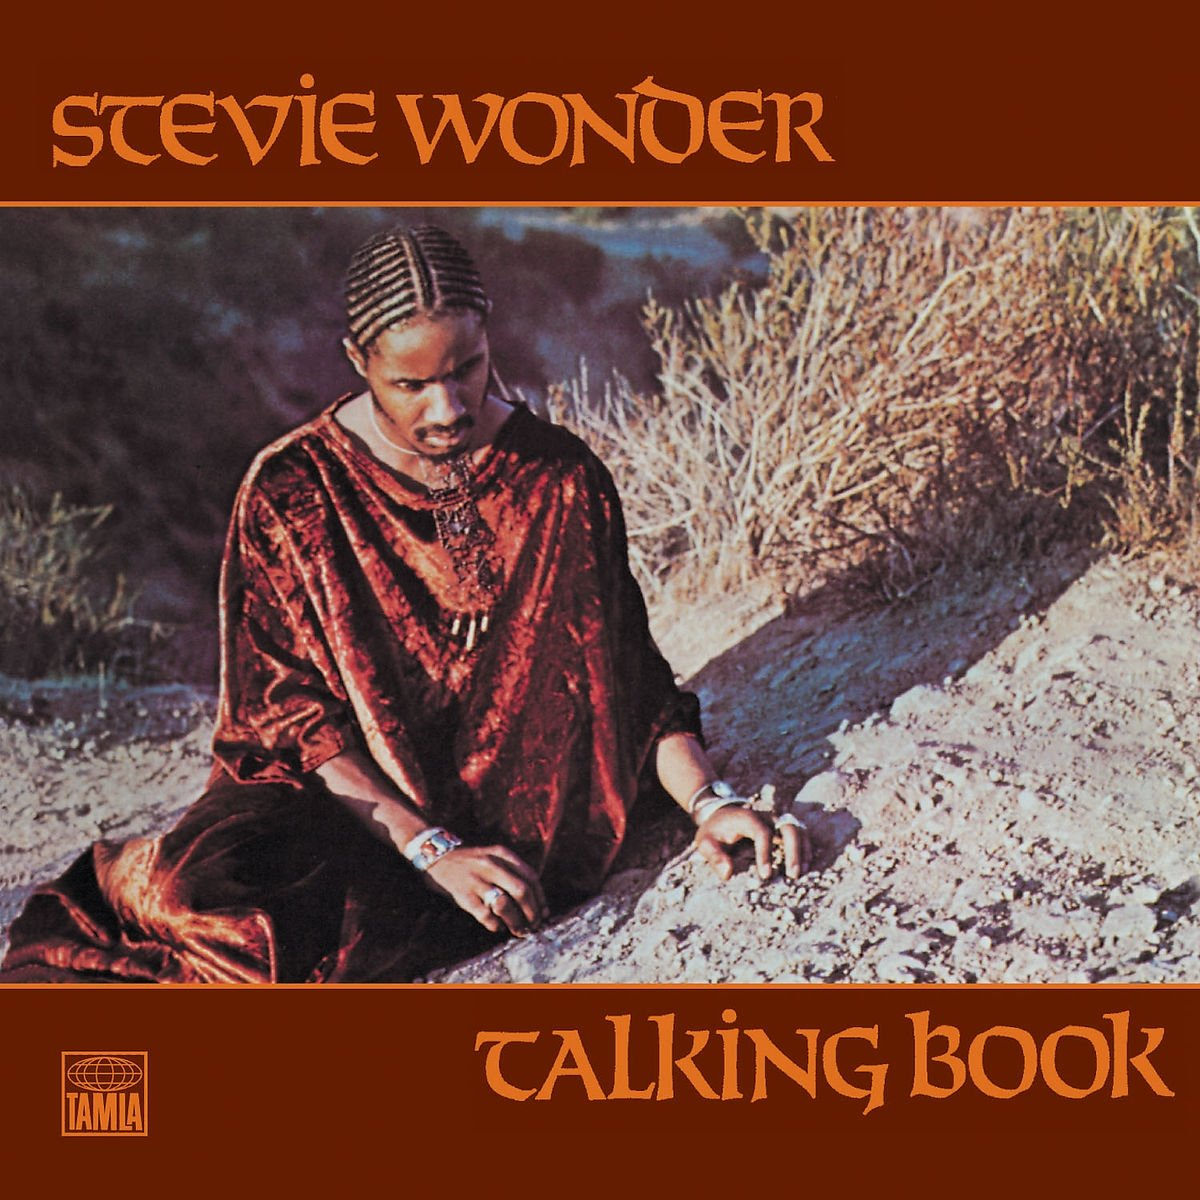 Stevie Wonder Talking Book The 100 Greatest Albums of All Time